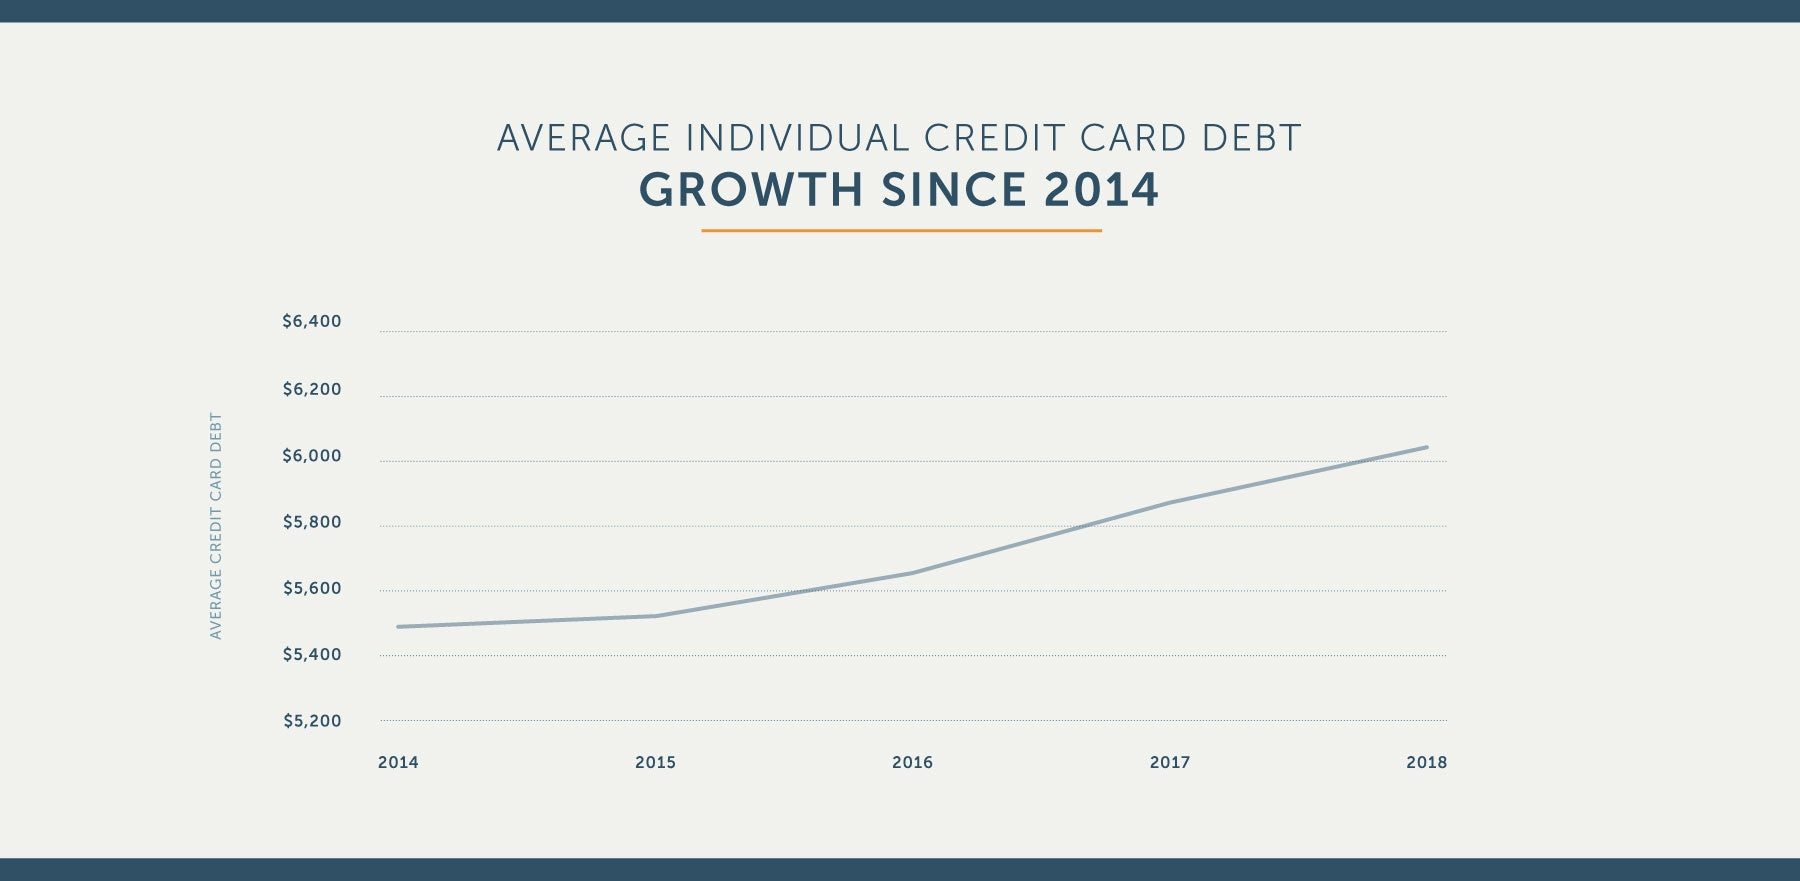 average individual credit card debt growth since 2014